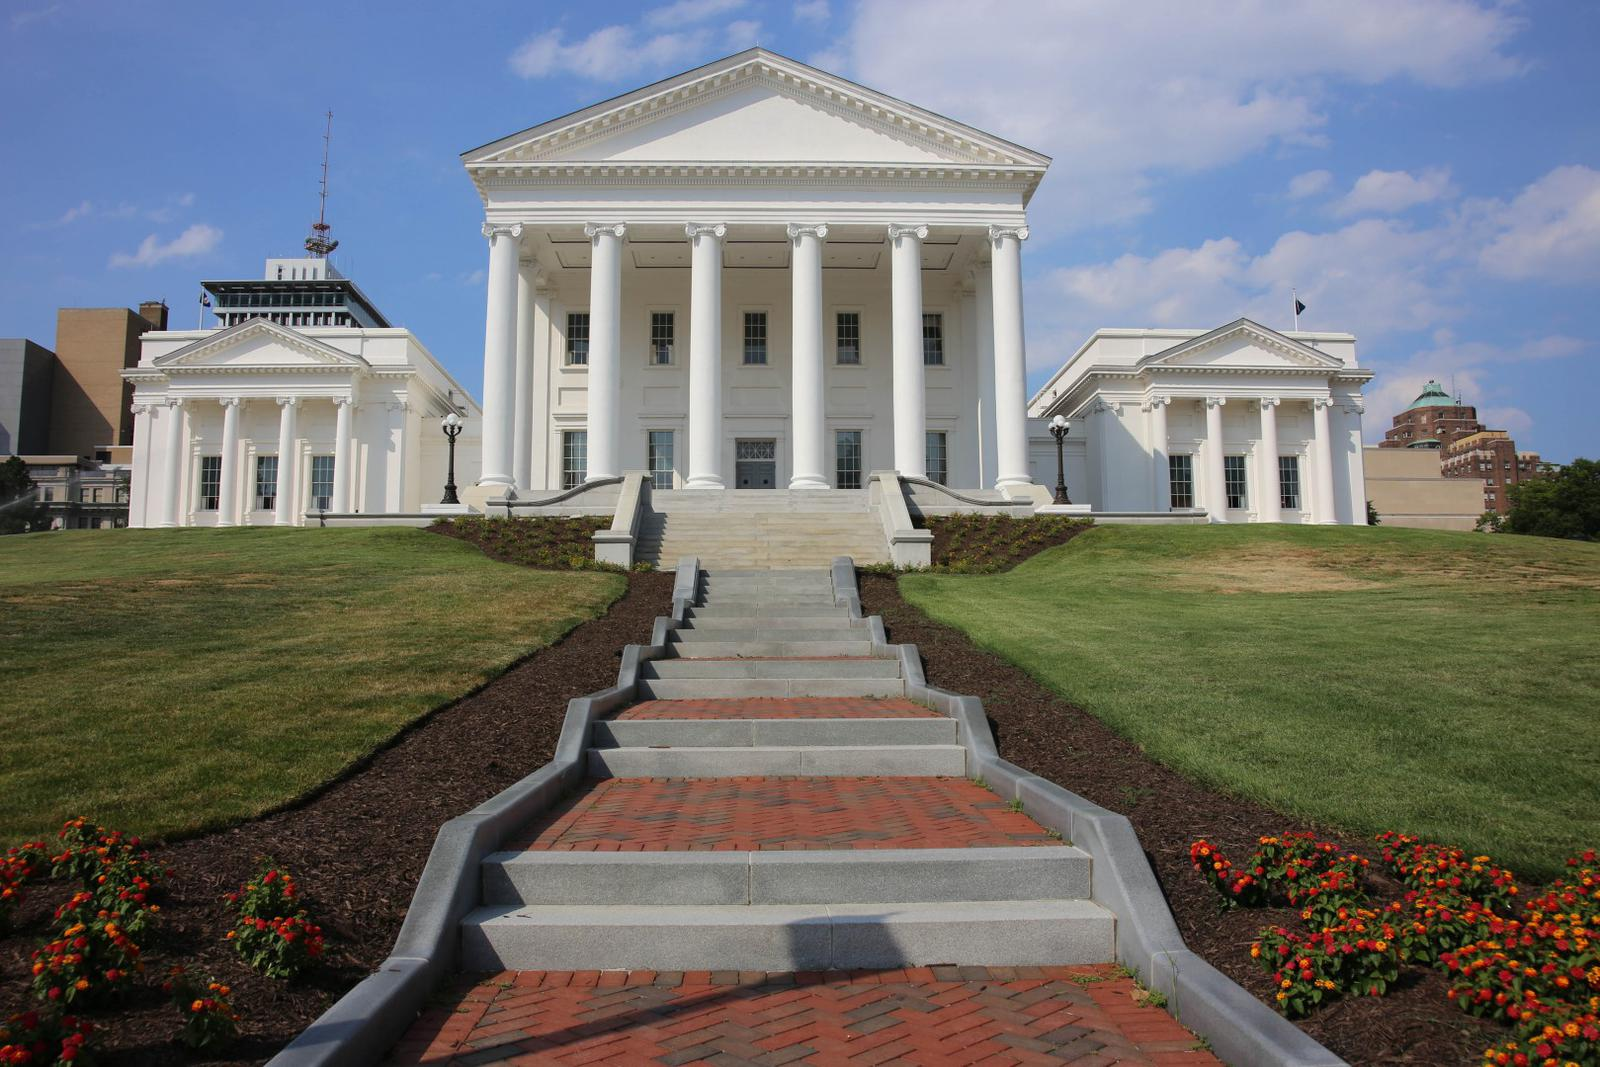 Virginia State Capital